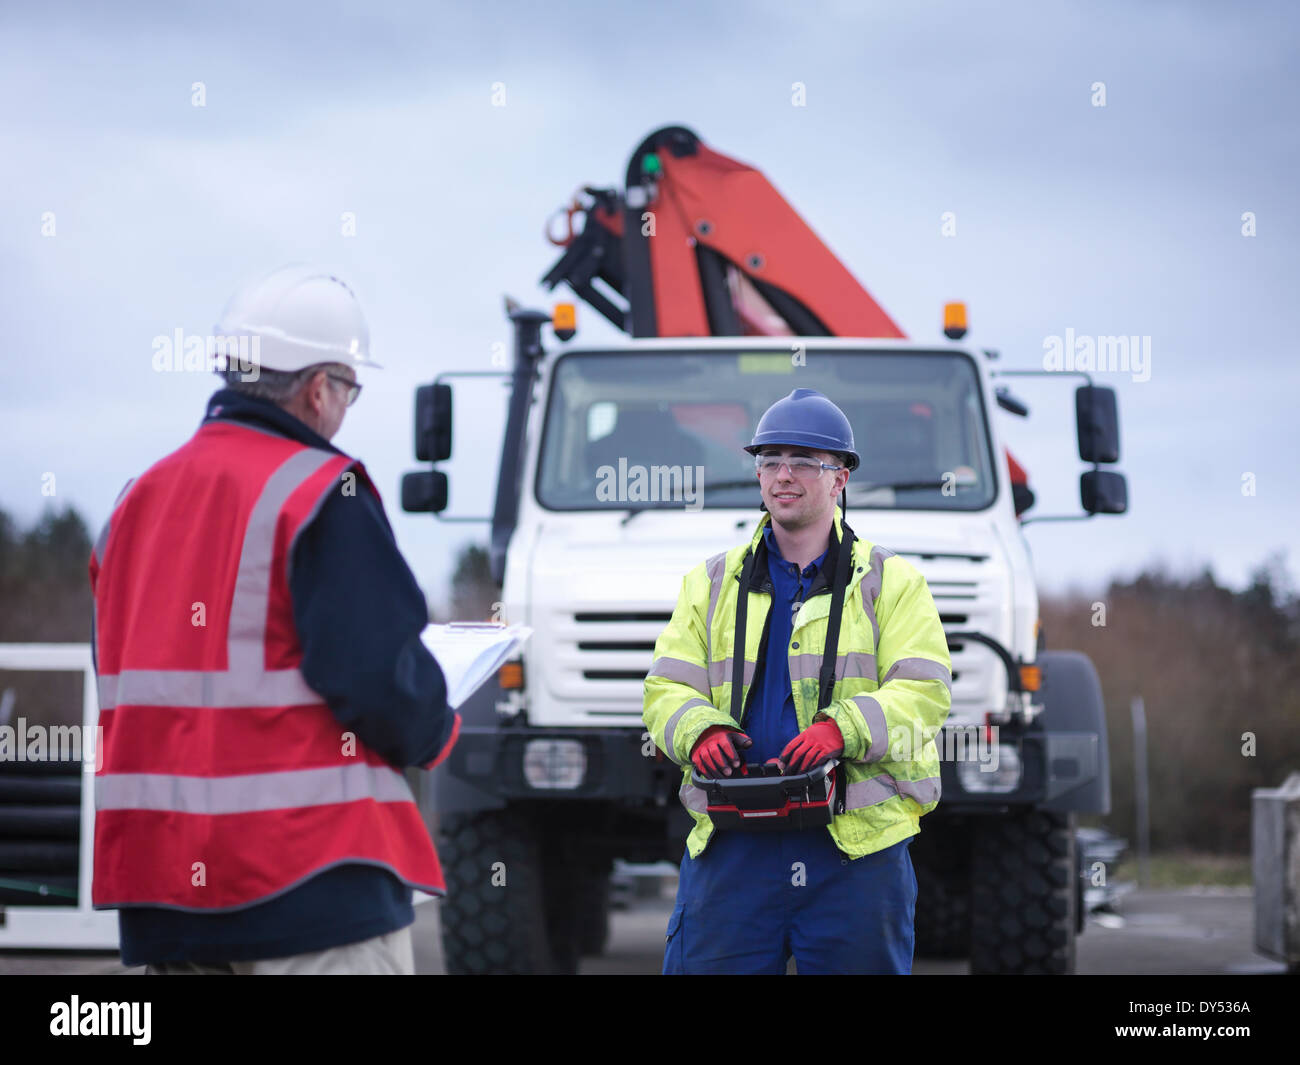 Emergency Response Team workers training with truck crane - Stock Image